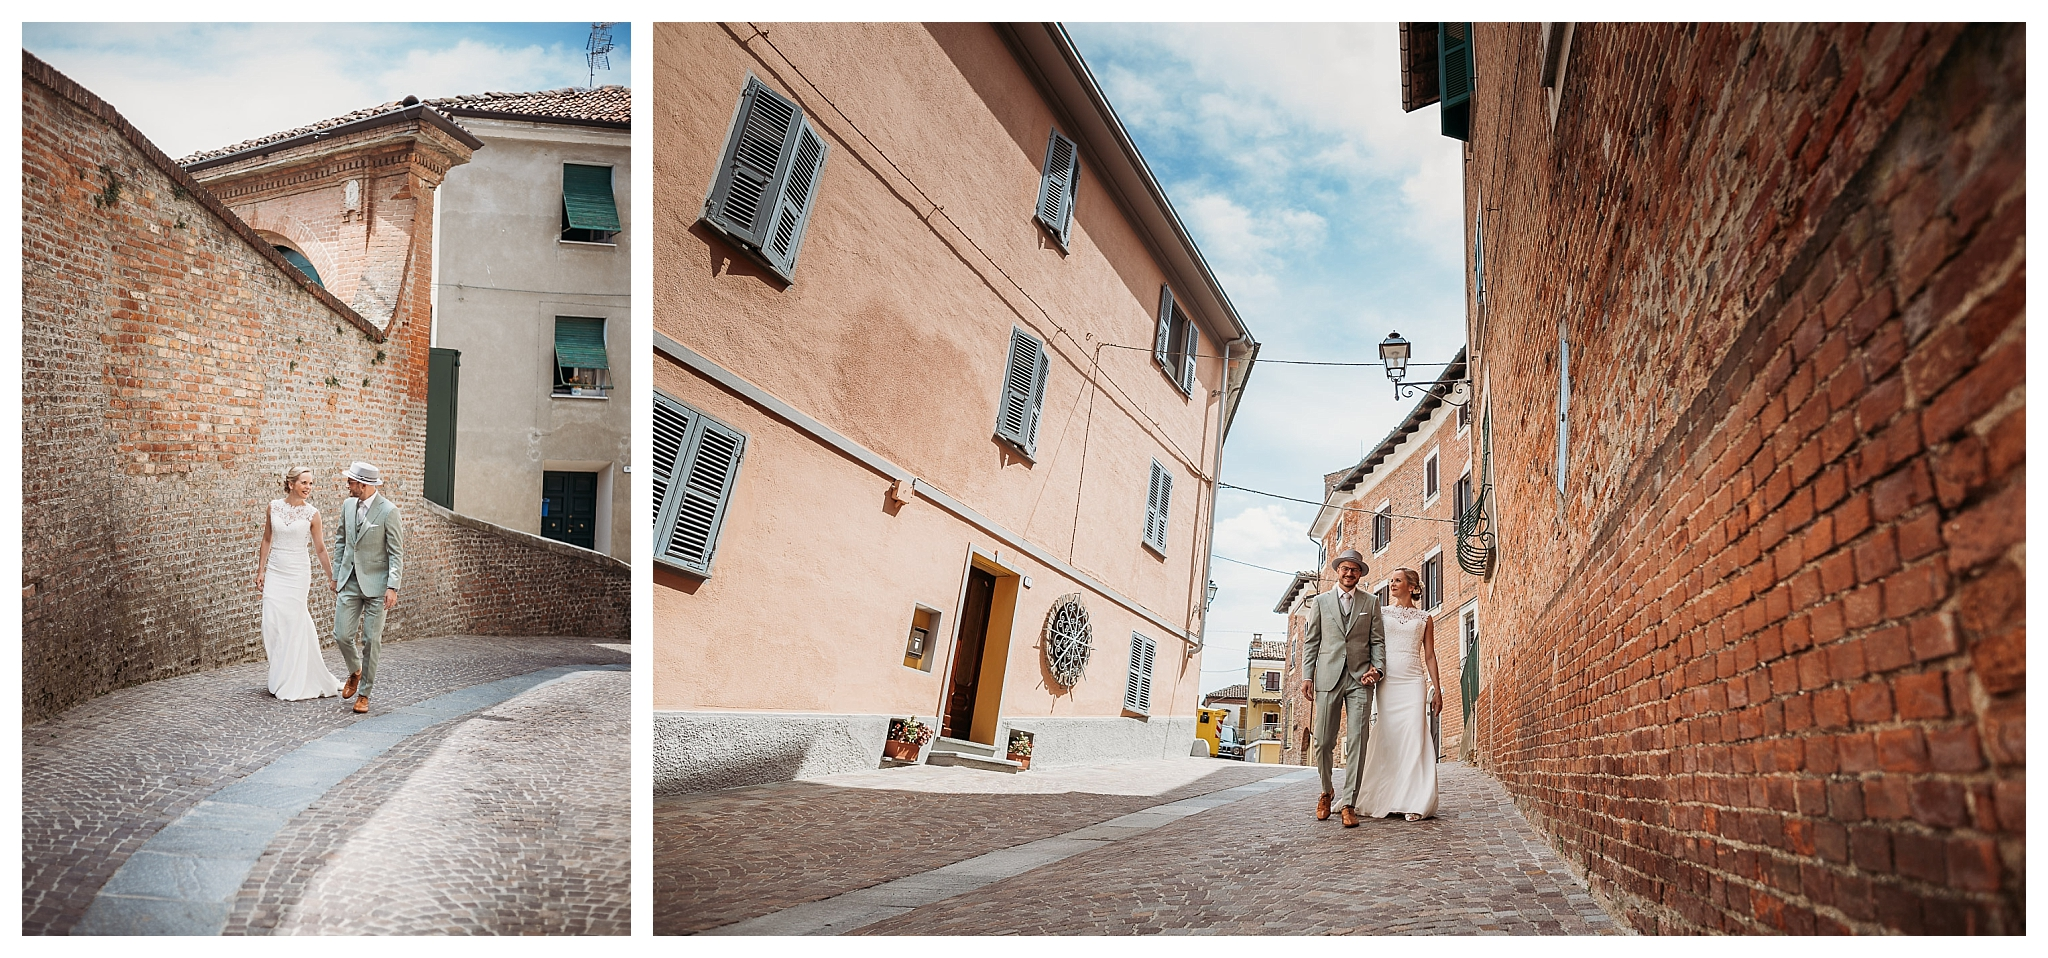 Wedding photo shoot in the streets of the tiny town of Mombaruzzo, Italy